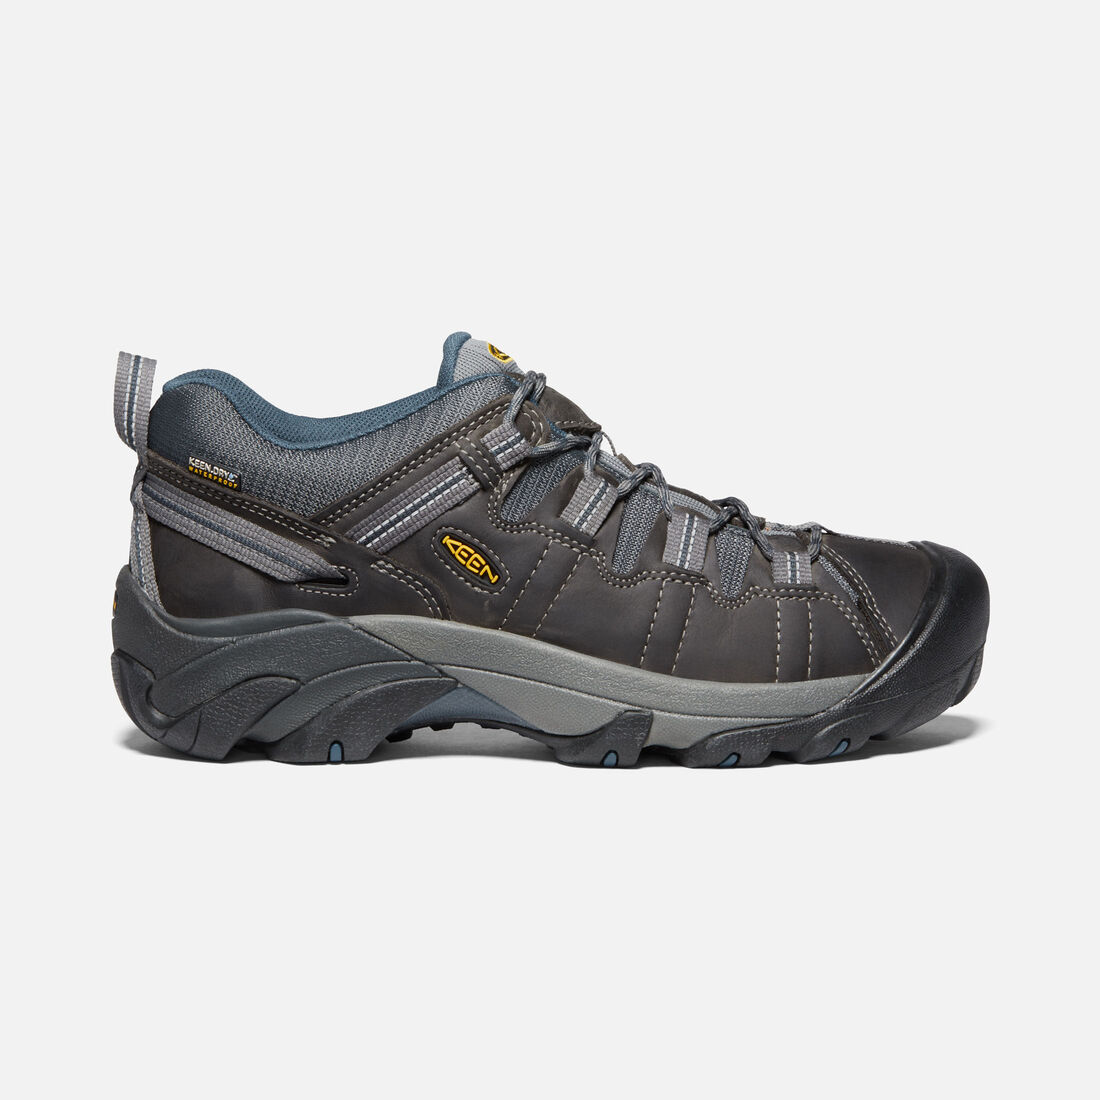 200f8af9c68 MEN S TARGHEE II HIKING SHOES